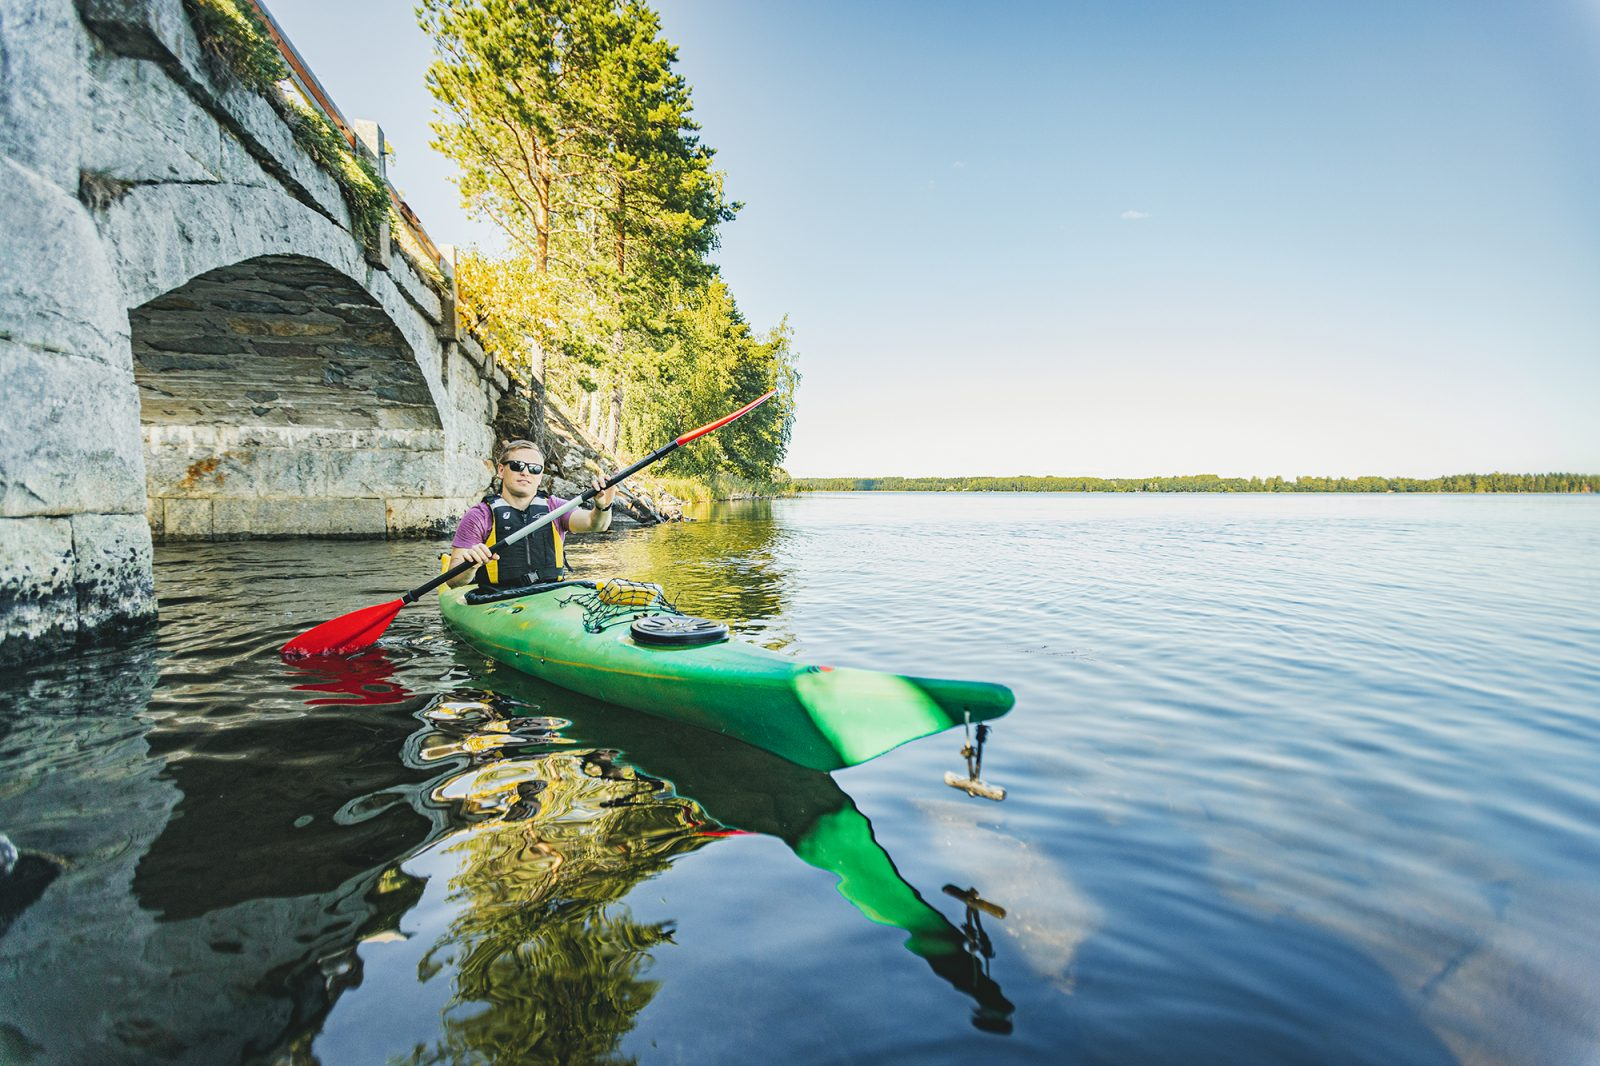 Kayaking trip to Punkaharju Nature Reserve